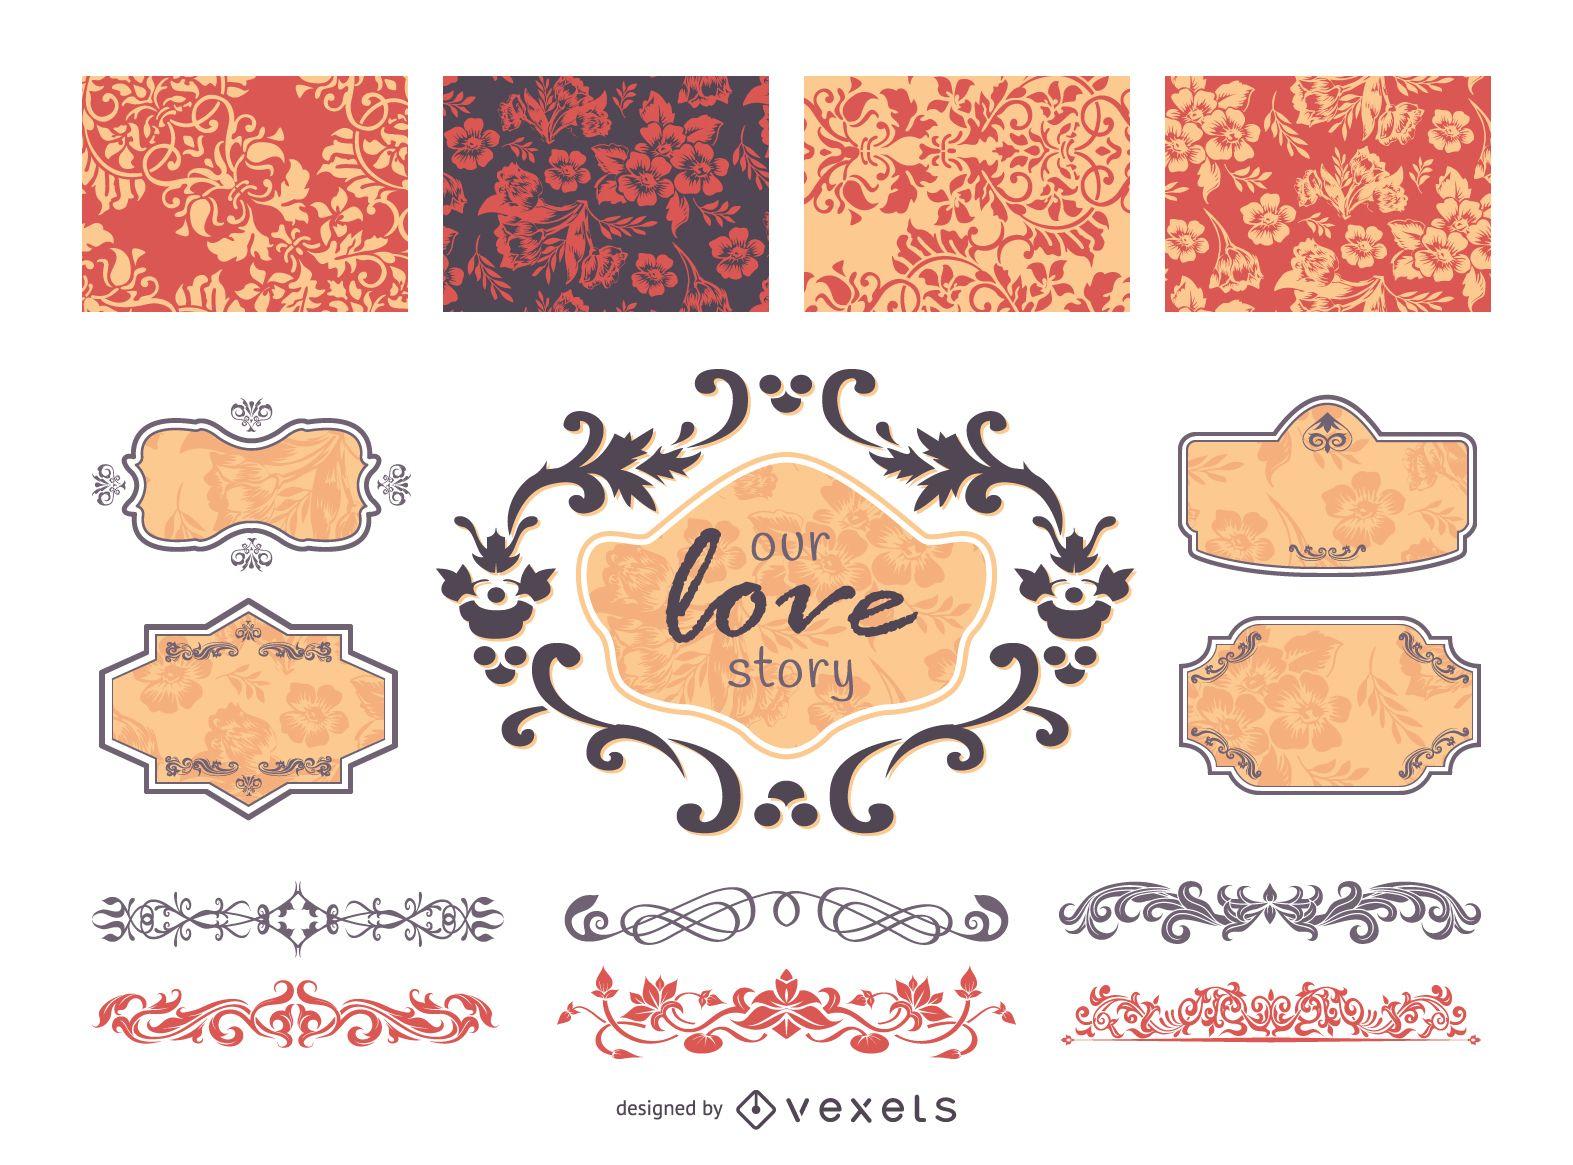 469 Wedding Vectors Images Ai Svg Free Download Graphic Website Internet Circuit Board Text Box Stock Vector Vintage Decorative Frames And Elements